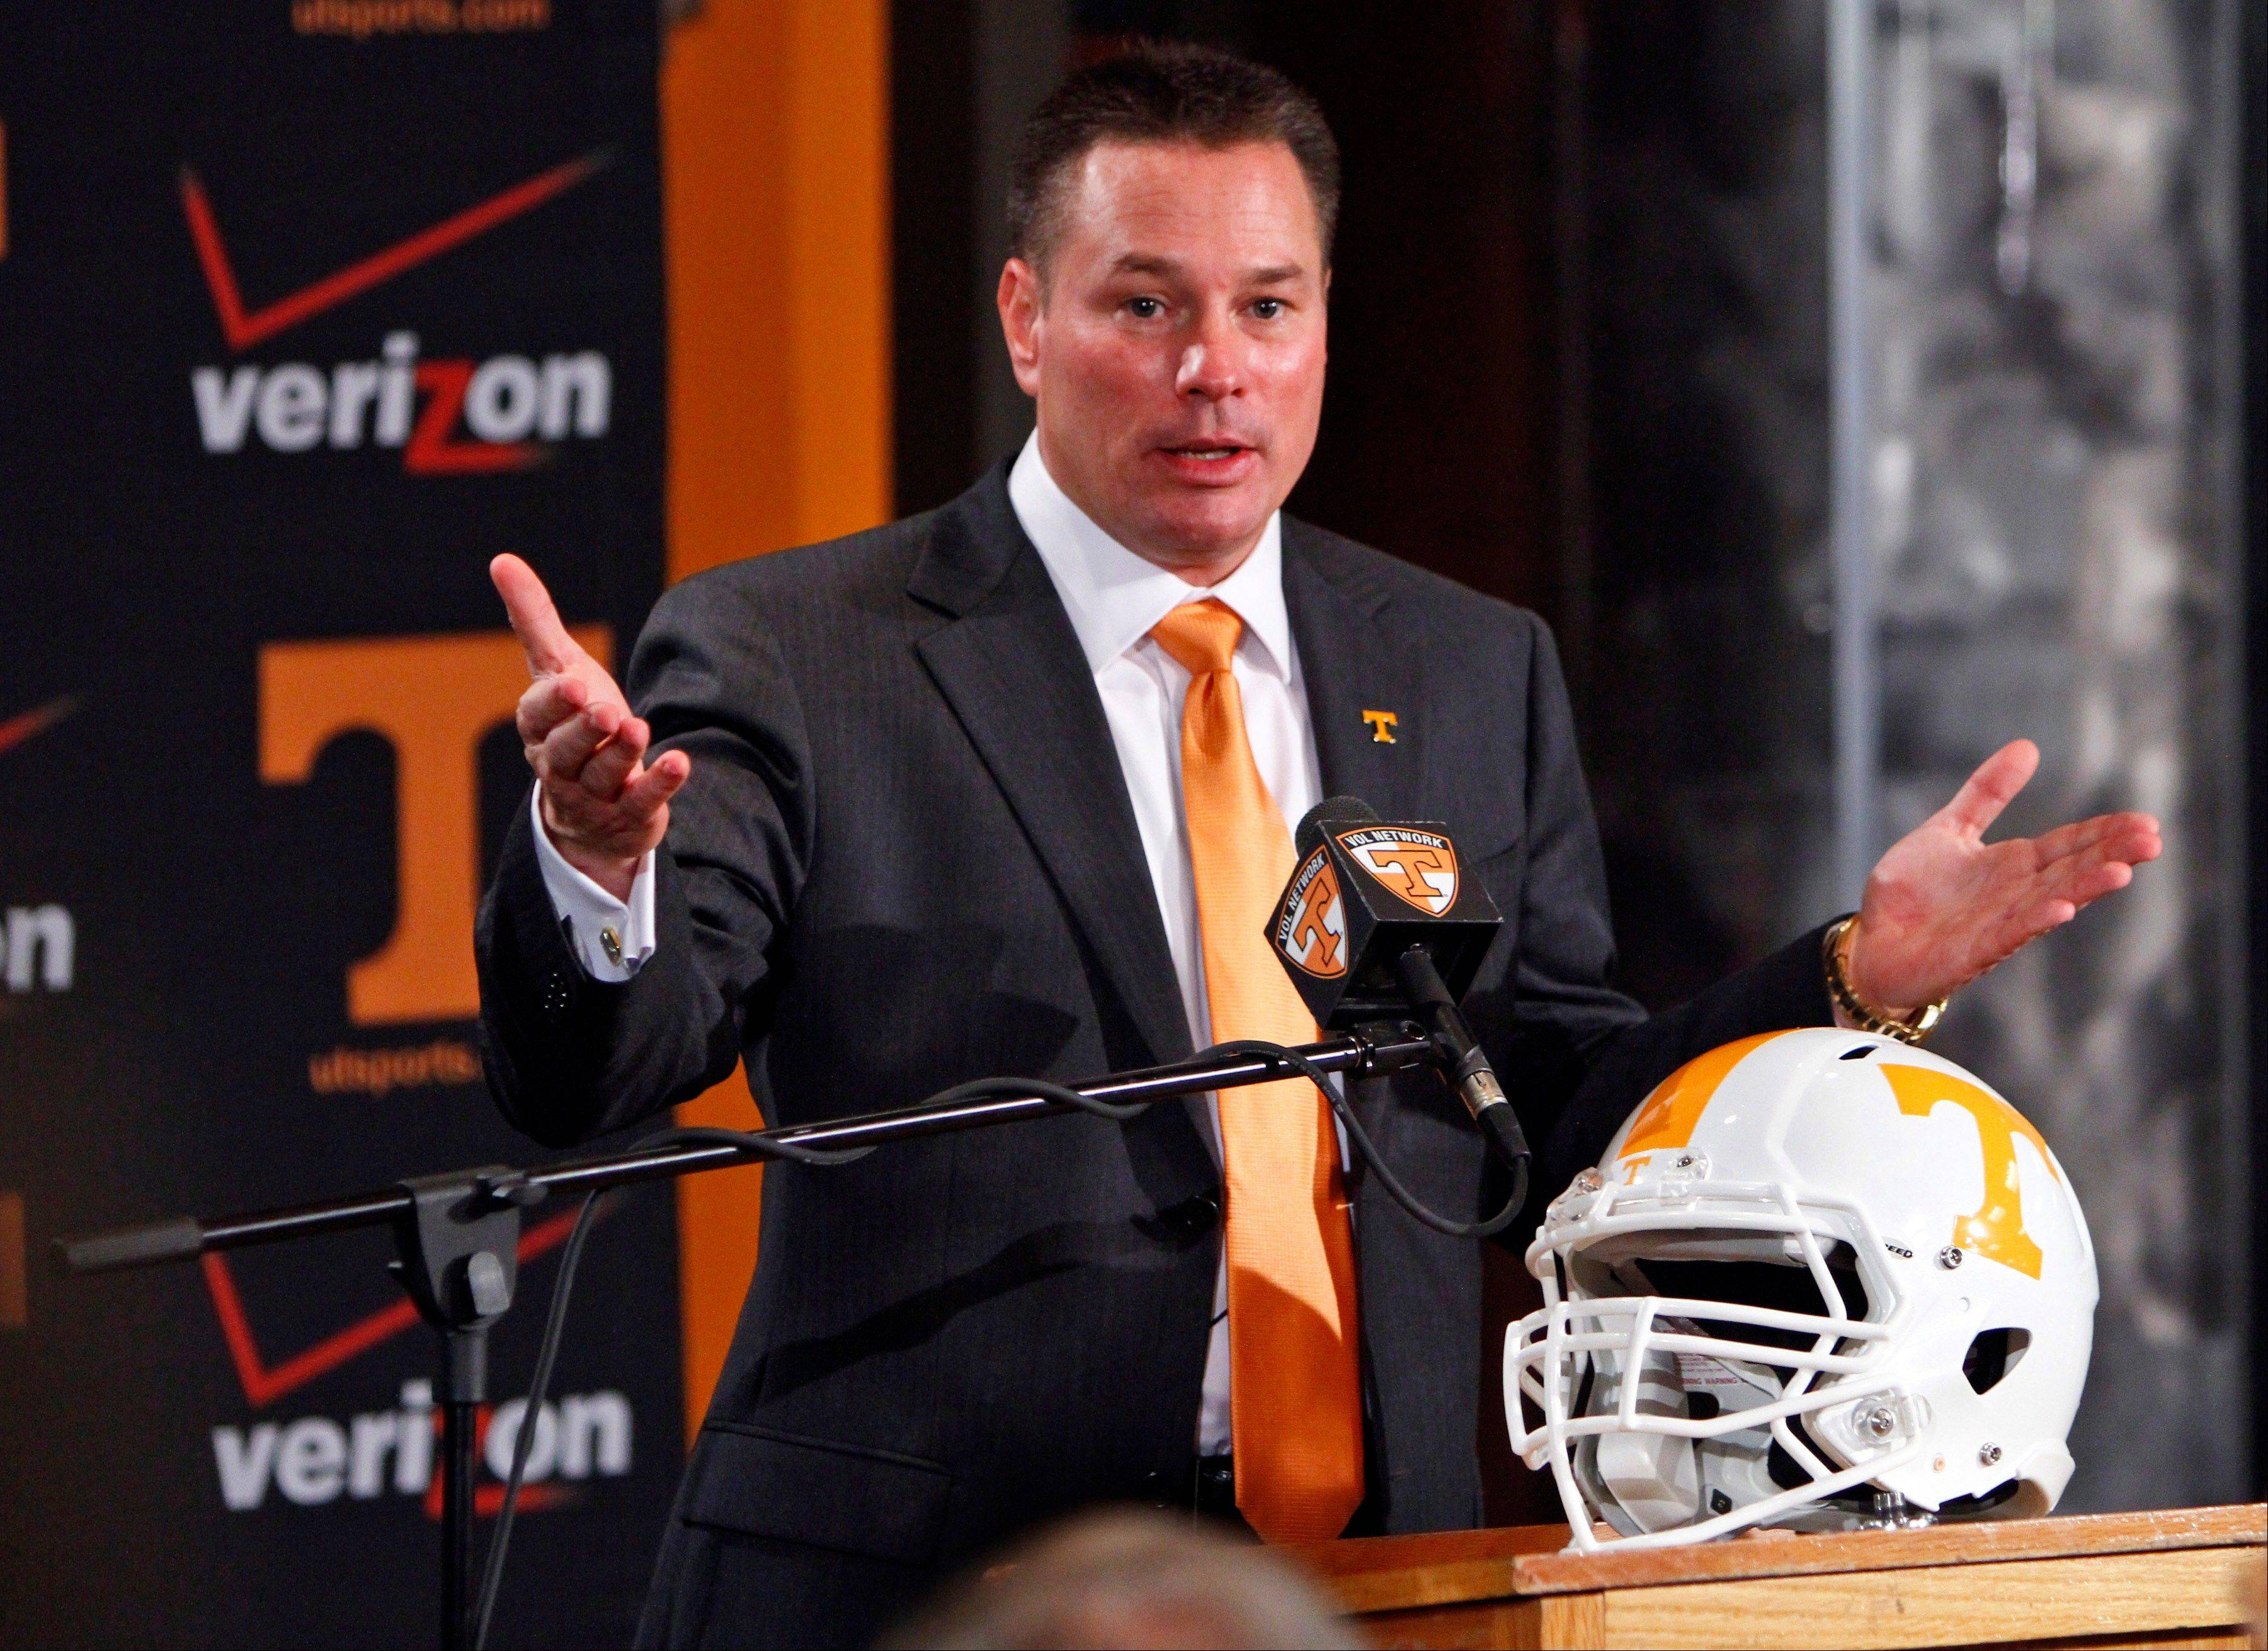 Butch Jones, Tennessee's new head football coach, speaks Friday during a news conference in Knoxville, Tenn. The Vols' introduced Jones on Friday as its successor to Derek Dooley, who was fired Nov. 18 after going 15-21 in three seasons.